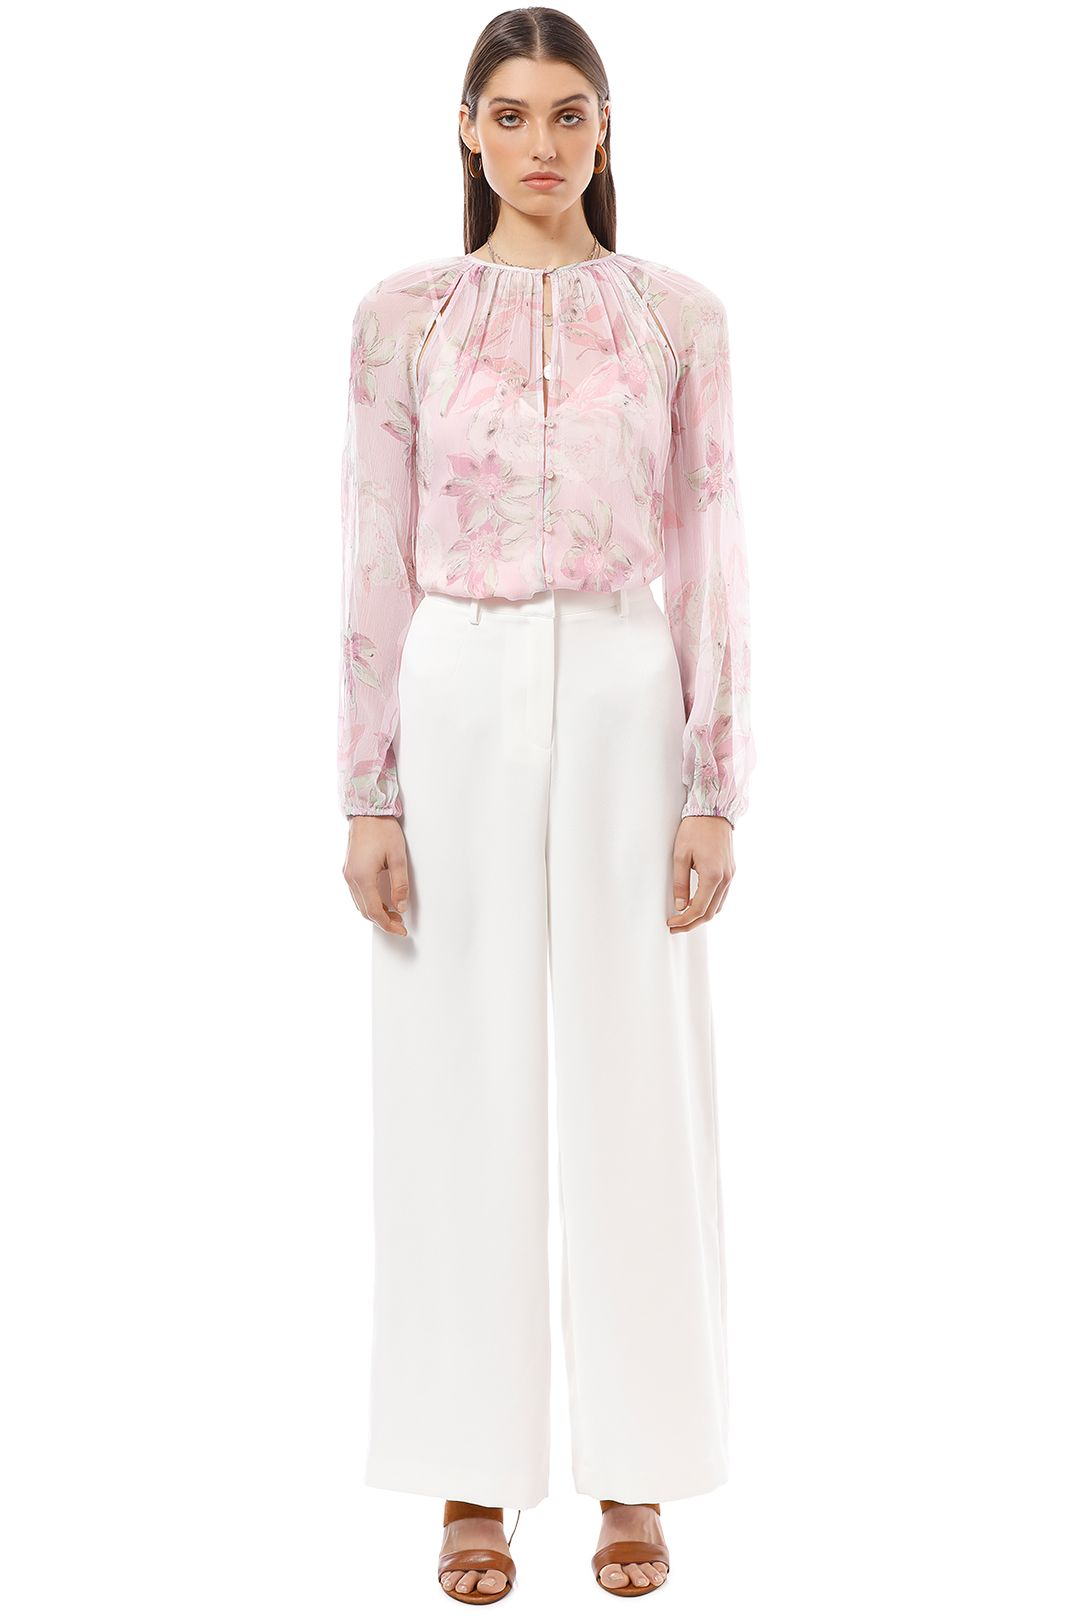 Alice McCall - Watercolour Floral Blouse - Pink Print - Front